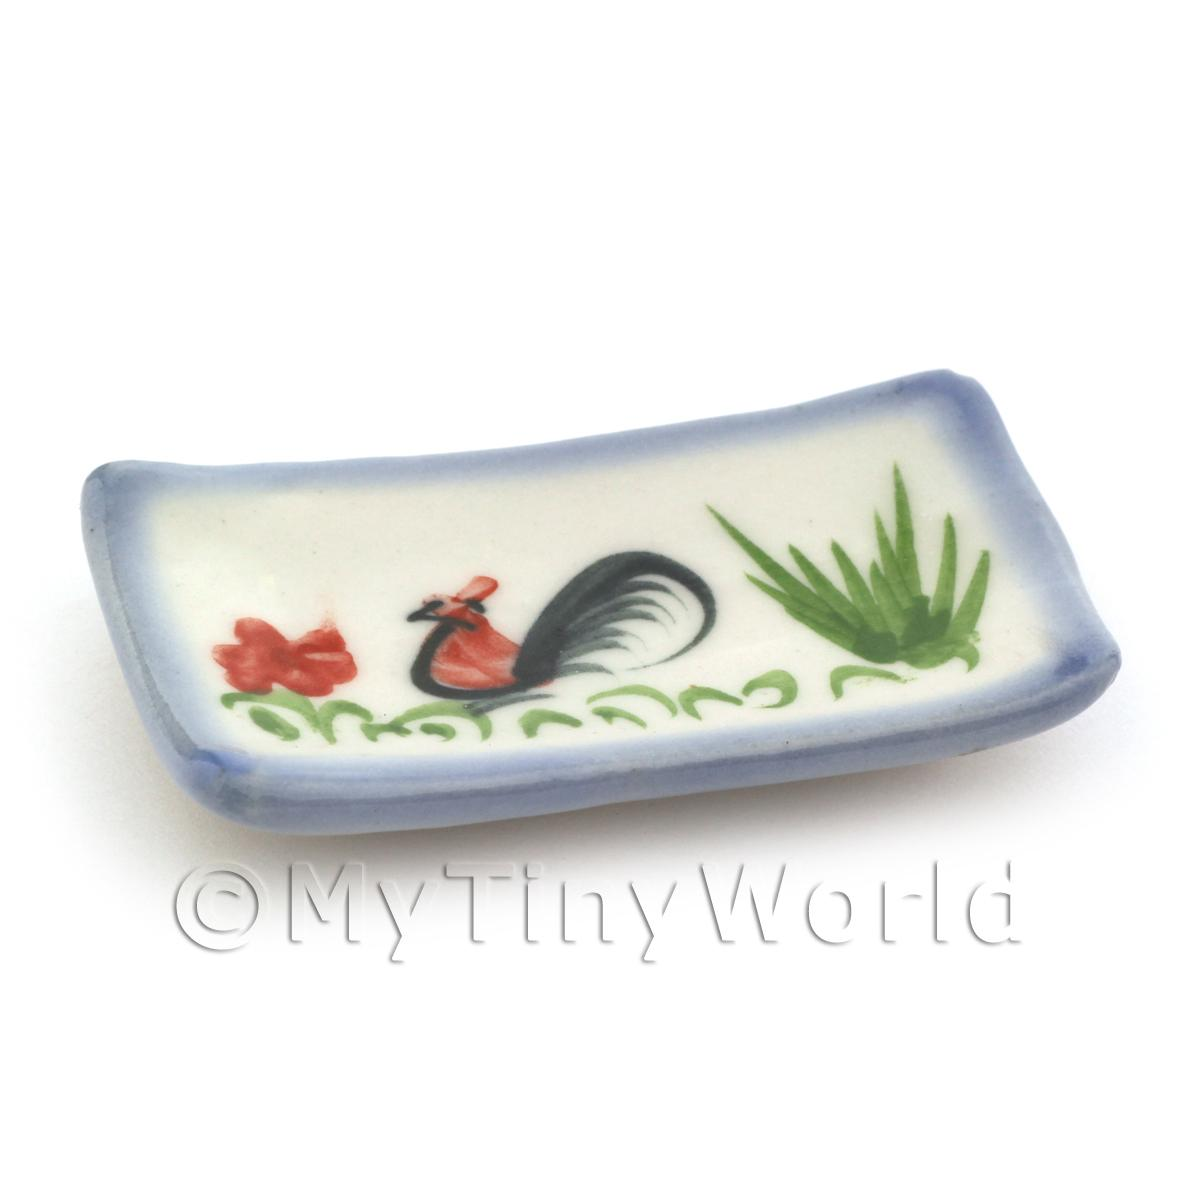 Dolls House Miniature 28mm x 49mm White Ceramic Cockerel Plate With Blue Edge